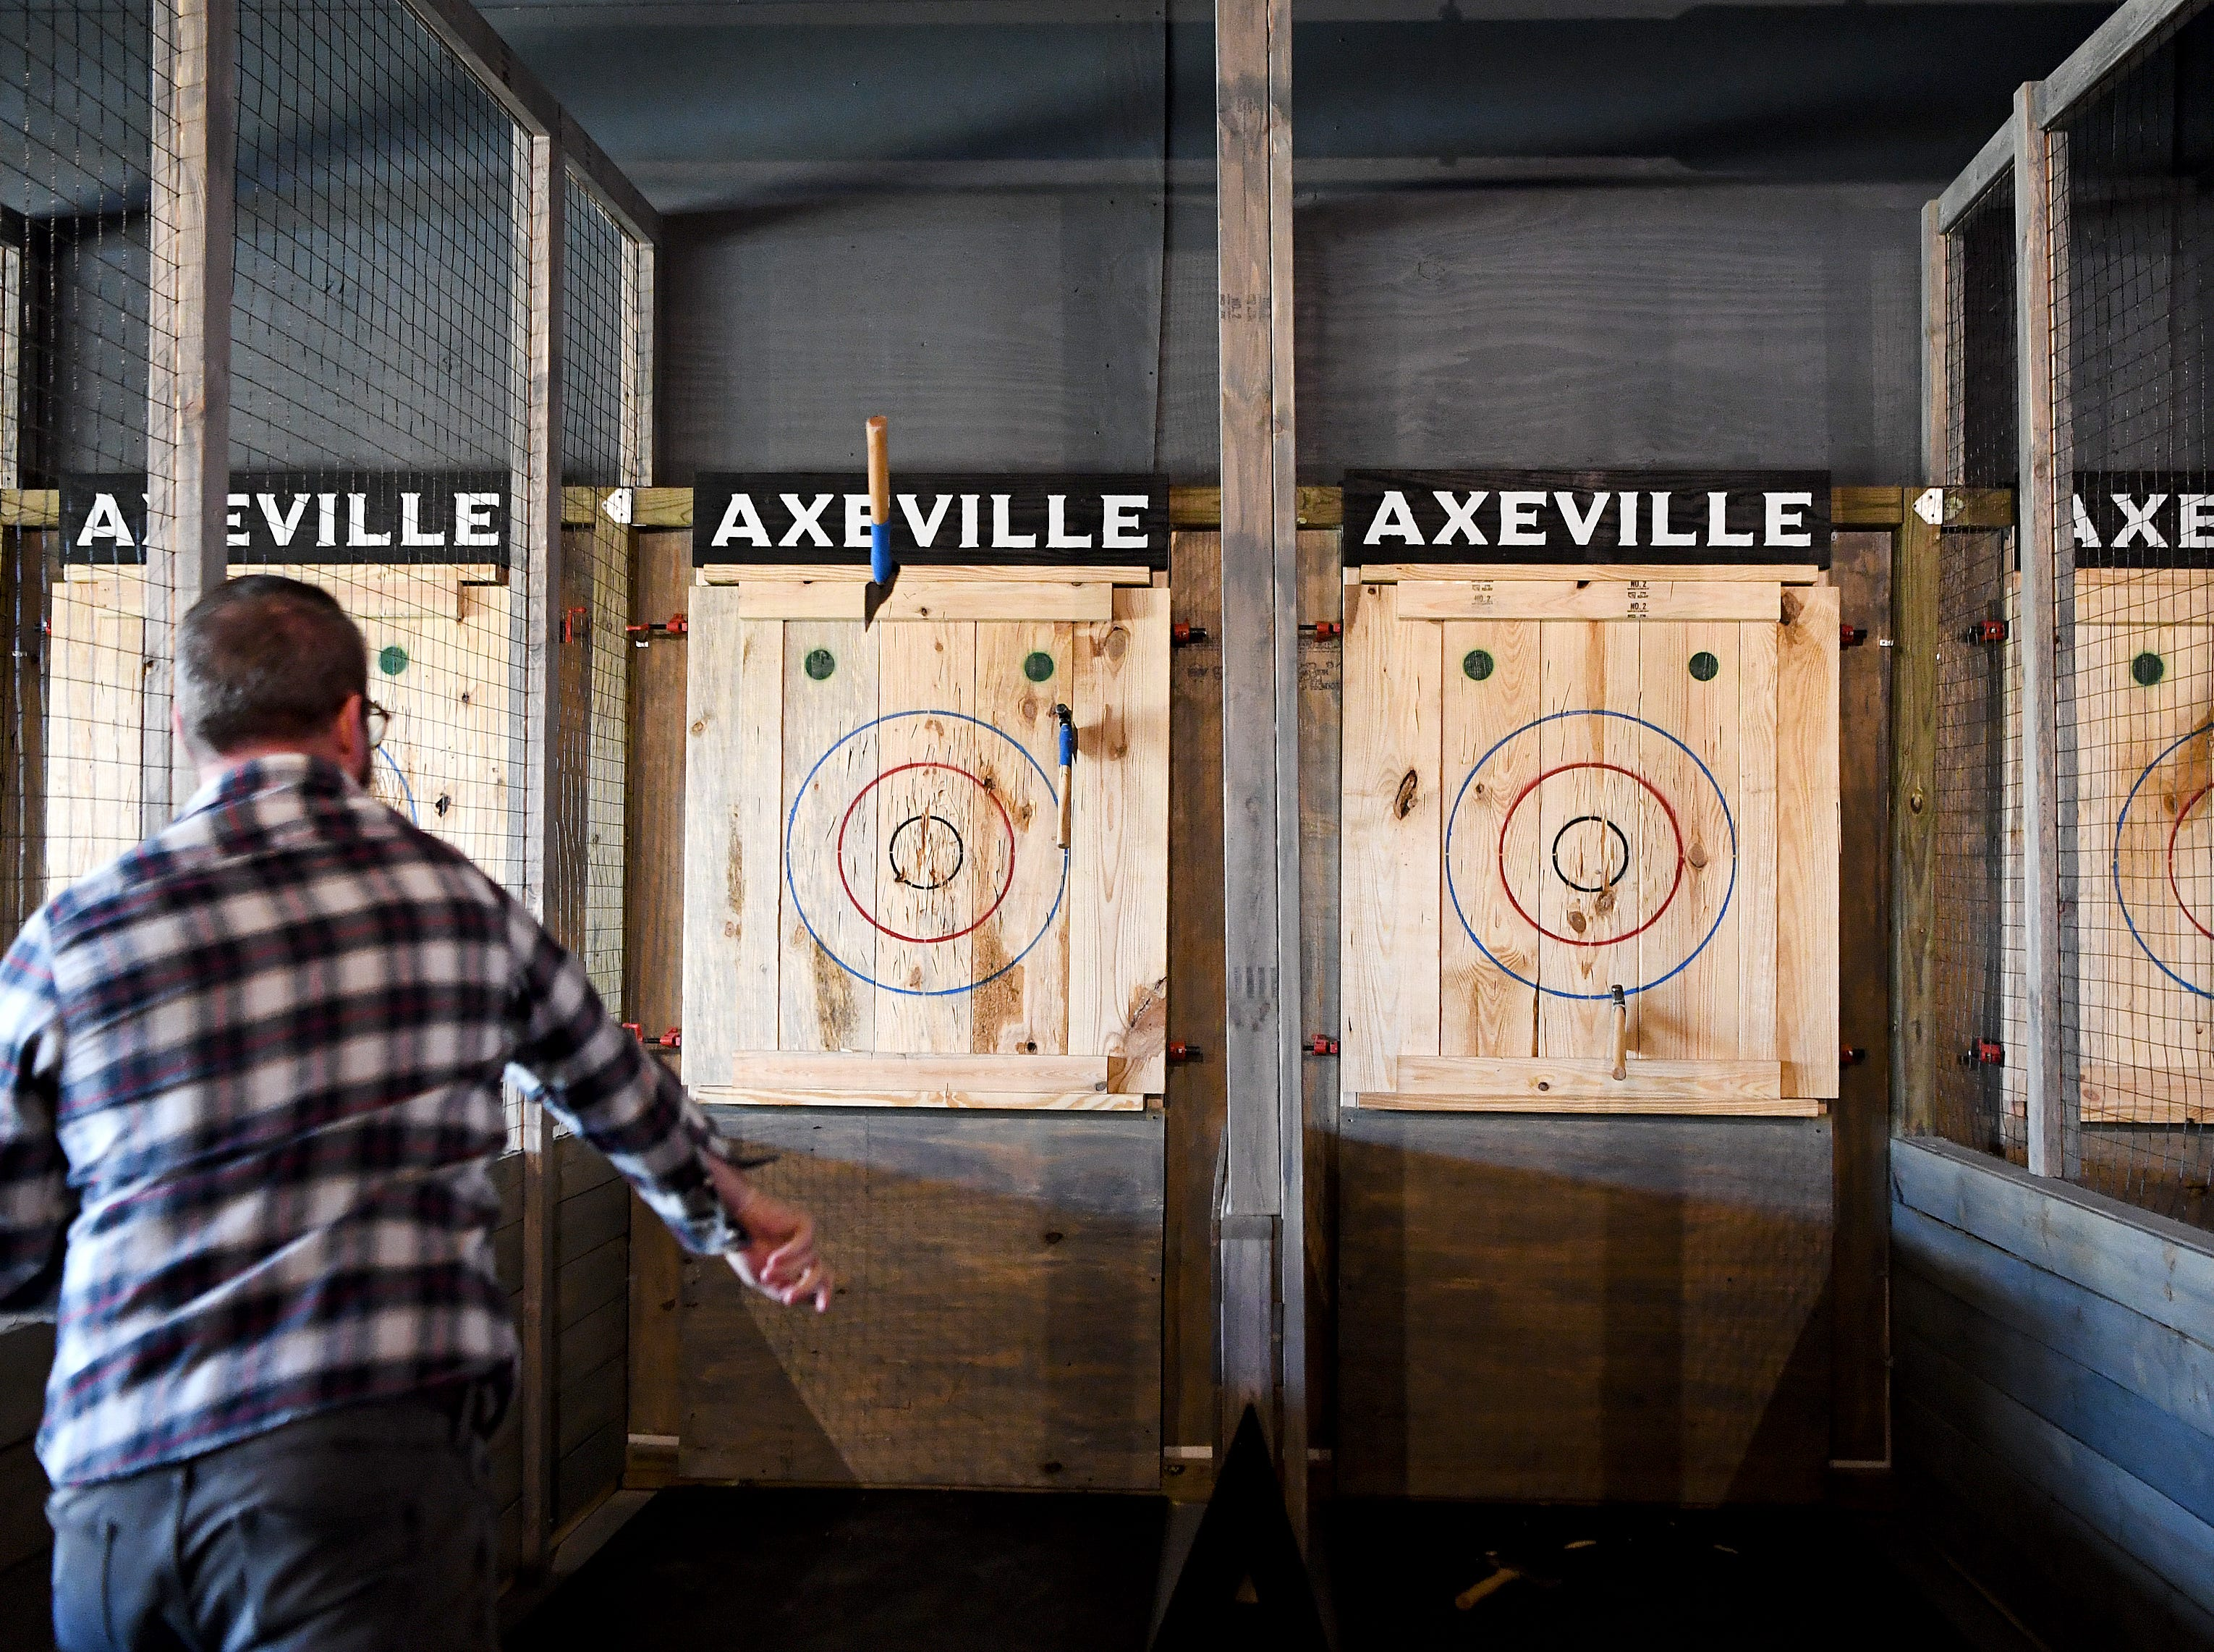 Axeville co-owner Ryan McClenny shows off his ax throwing skills at Axeville Throwing Club, Asheville's first ax throwing facility, which is planning to open to the public in March. The club will have coaches on hand to teach first-timers how to properly throw an ax.